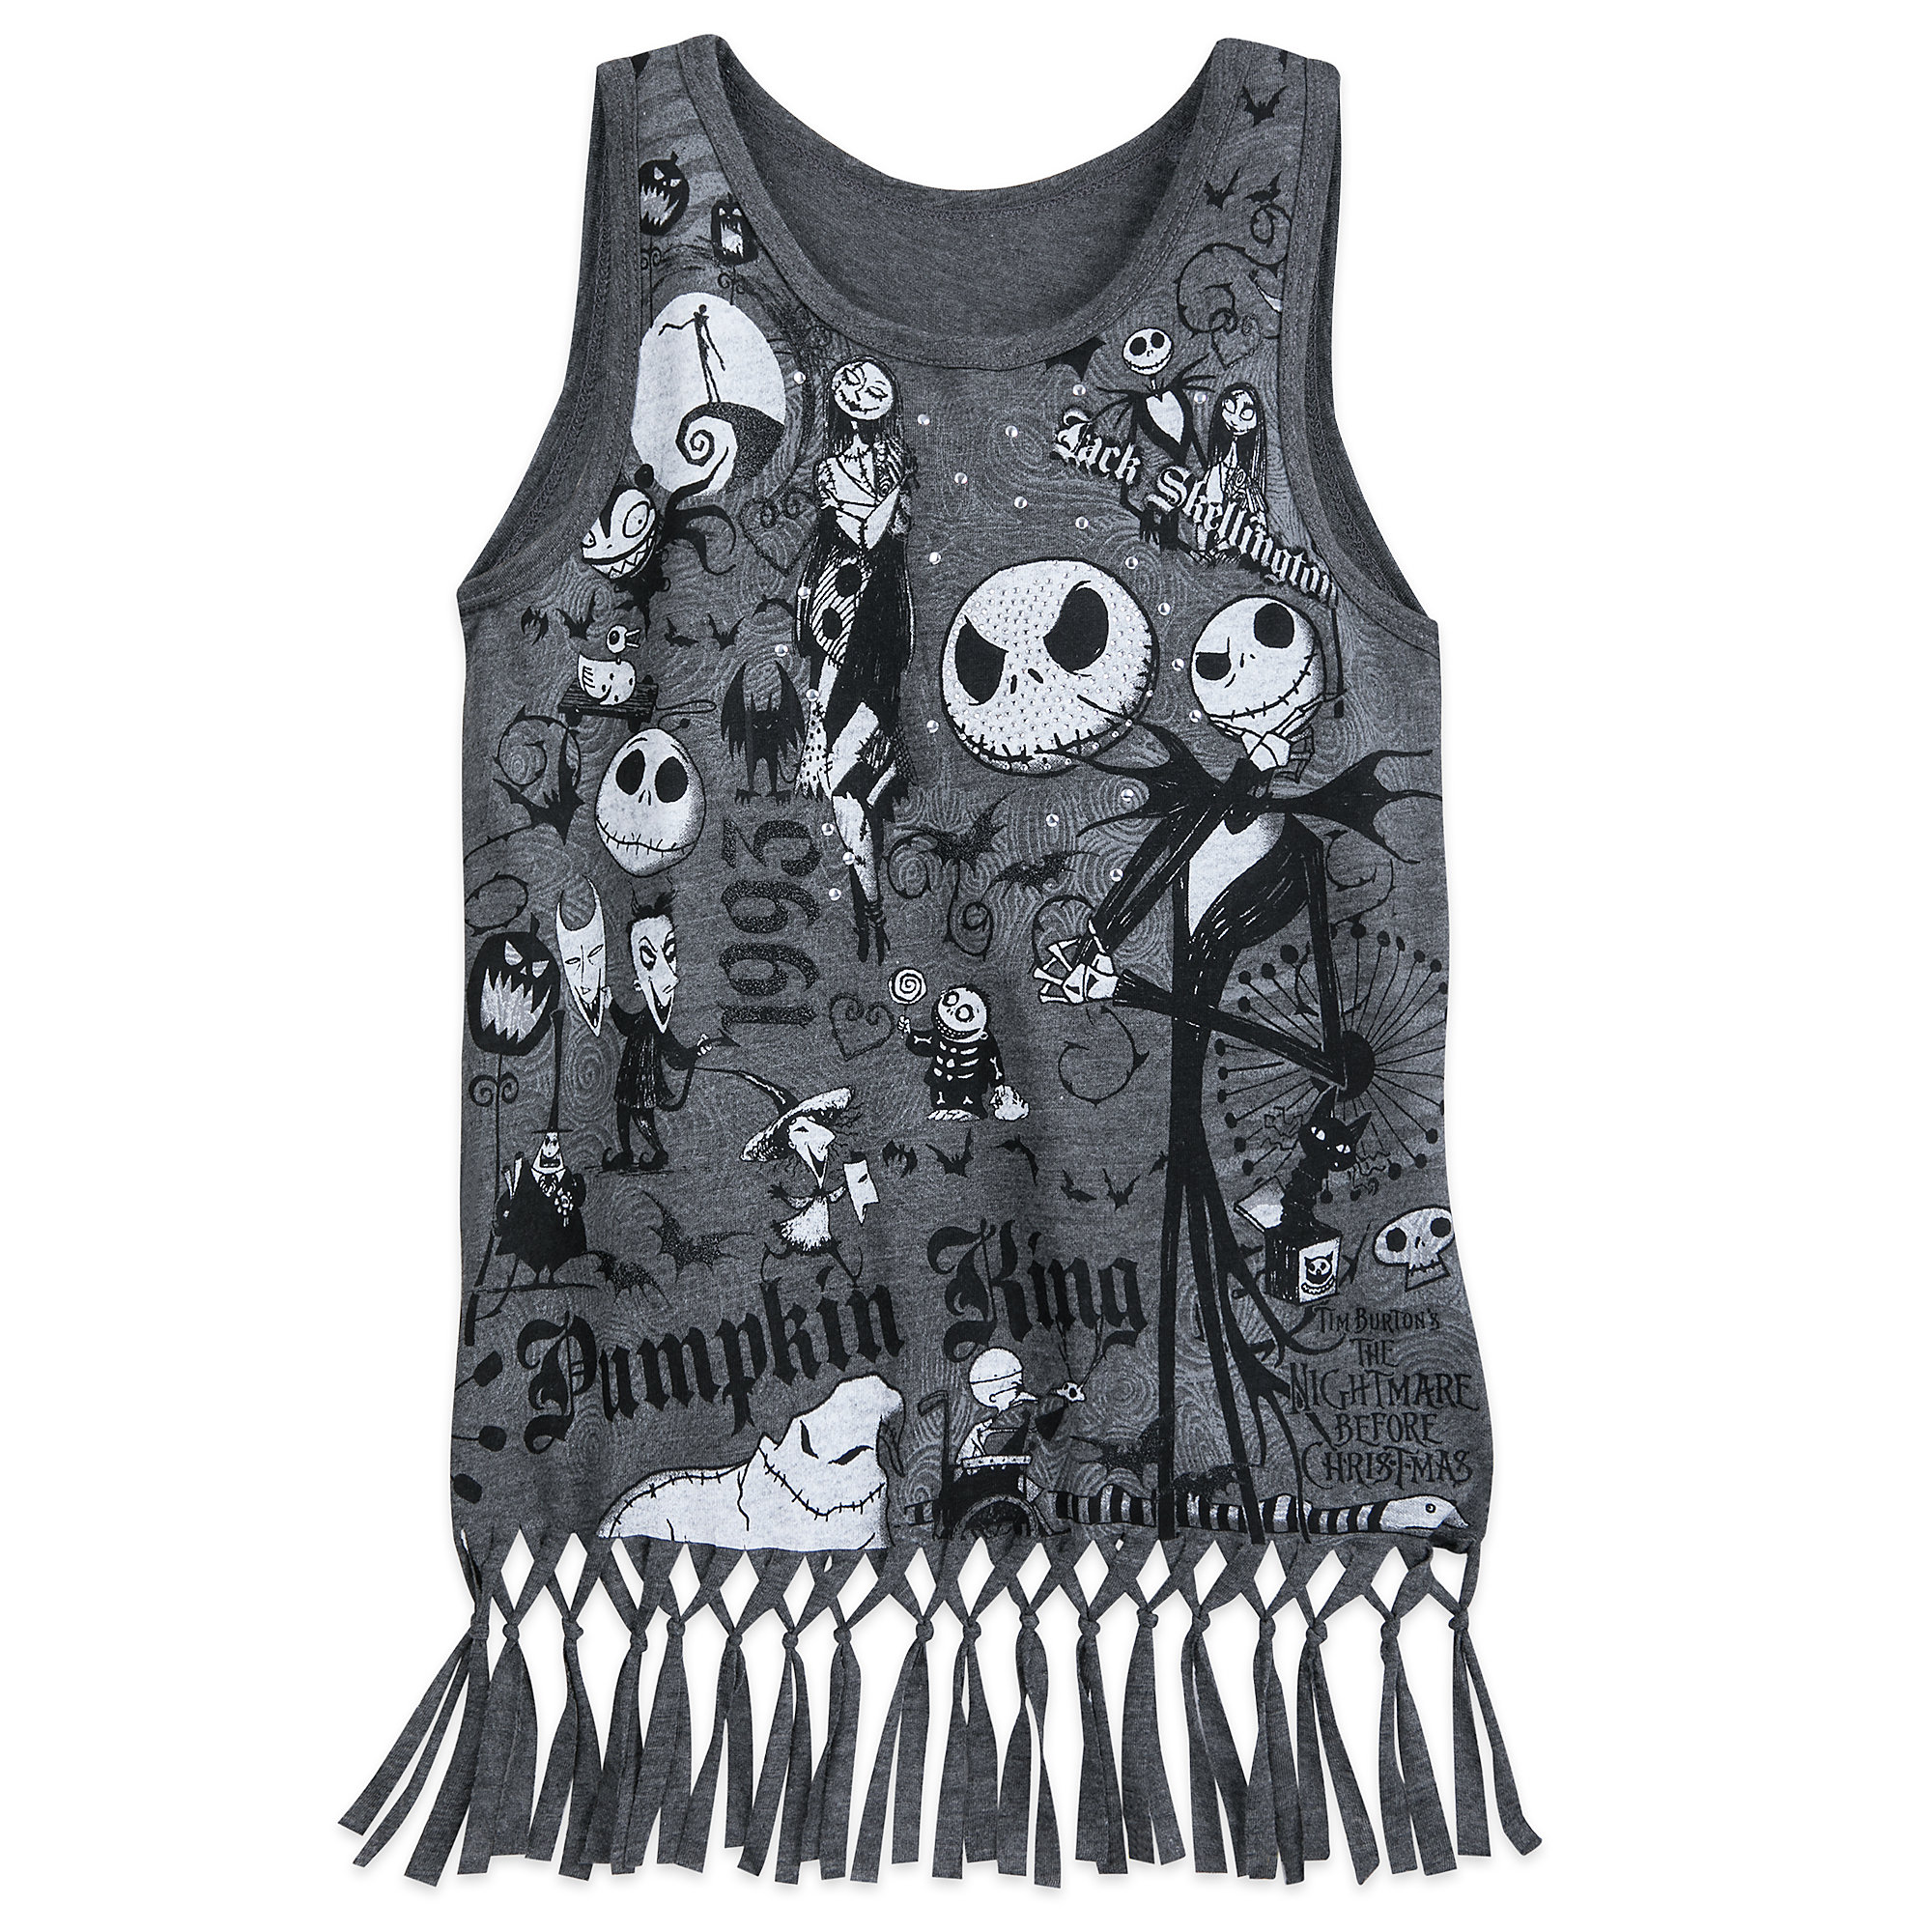 Nightmare Before Christmas Fringed Tank Top for Girls